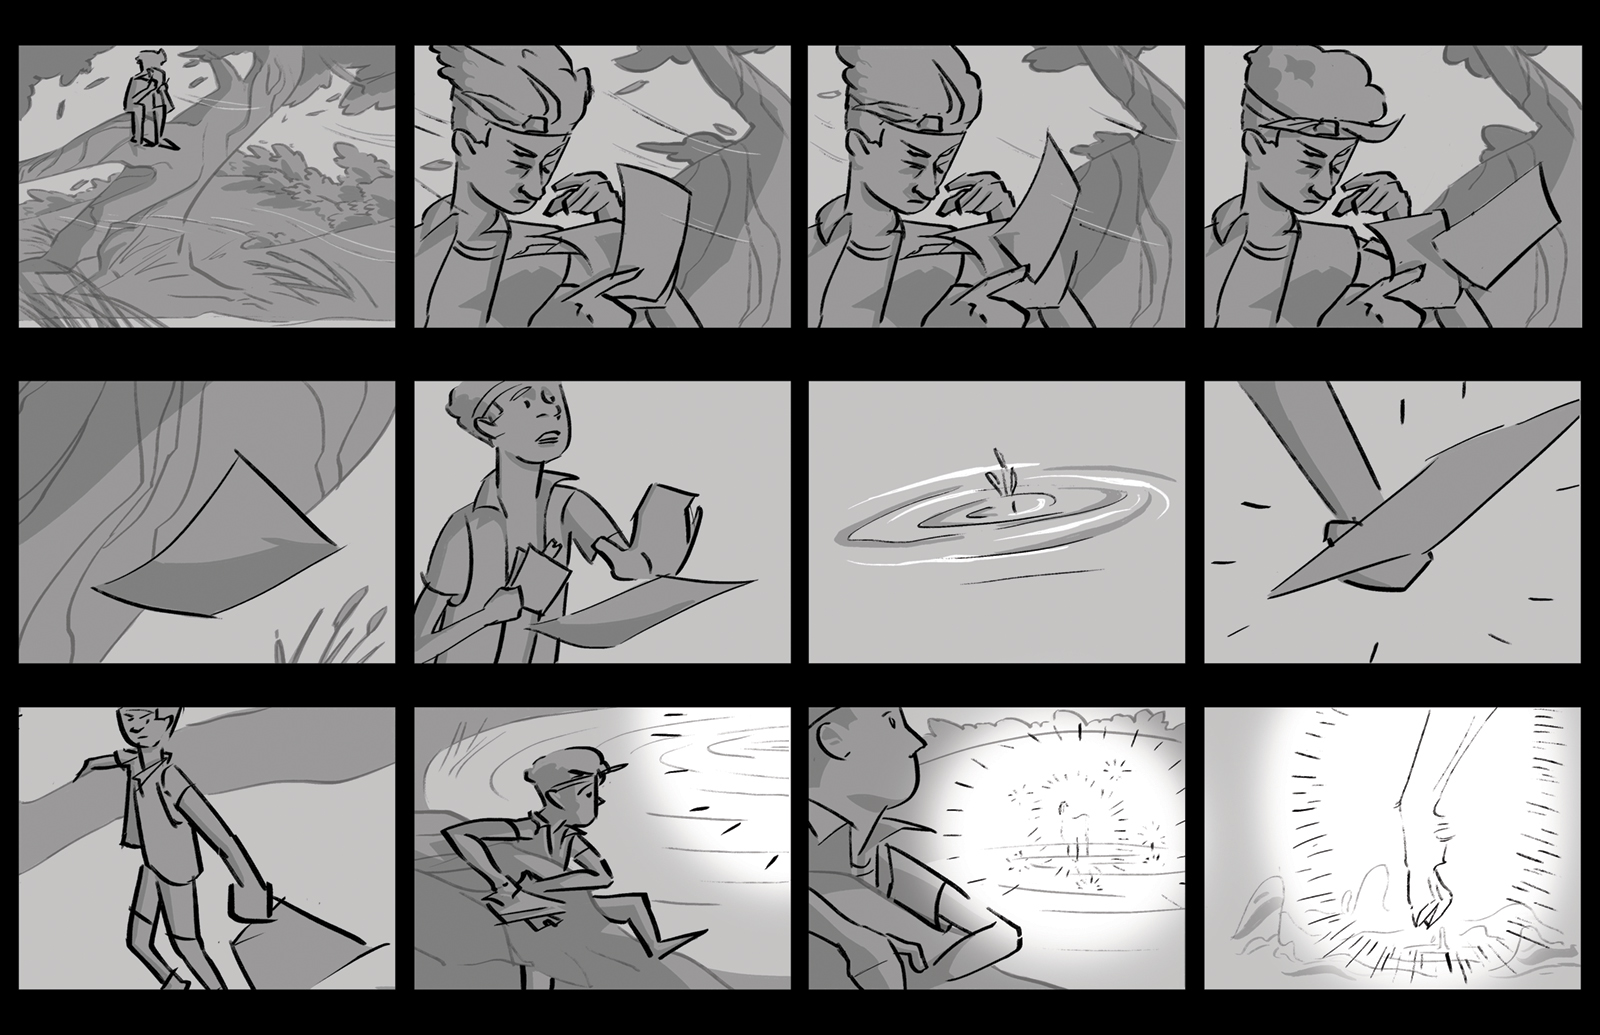 Eighth storyboard. Denny opens the letter by a pond. The wind blows it down. There's a splash and a mysterious light.